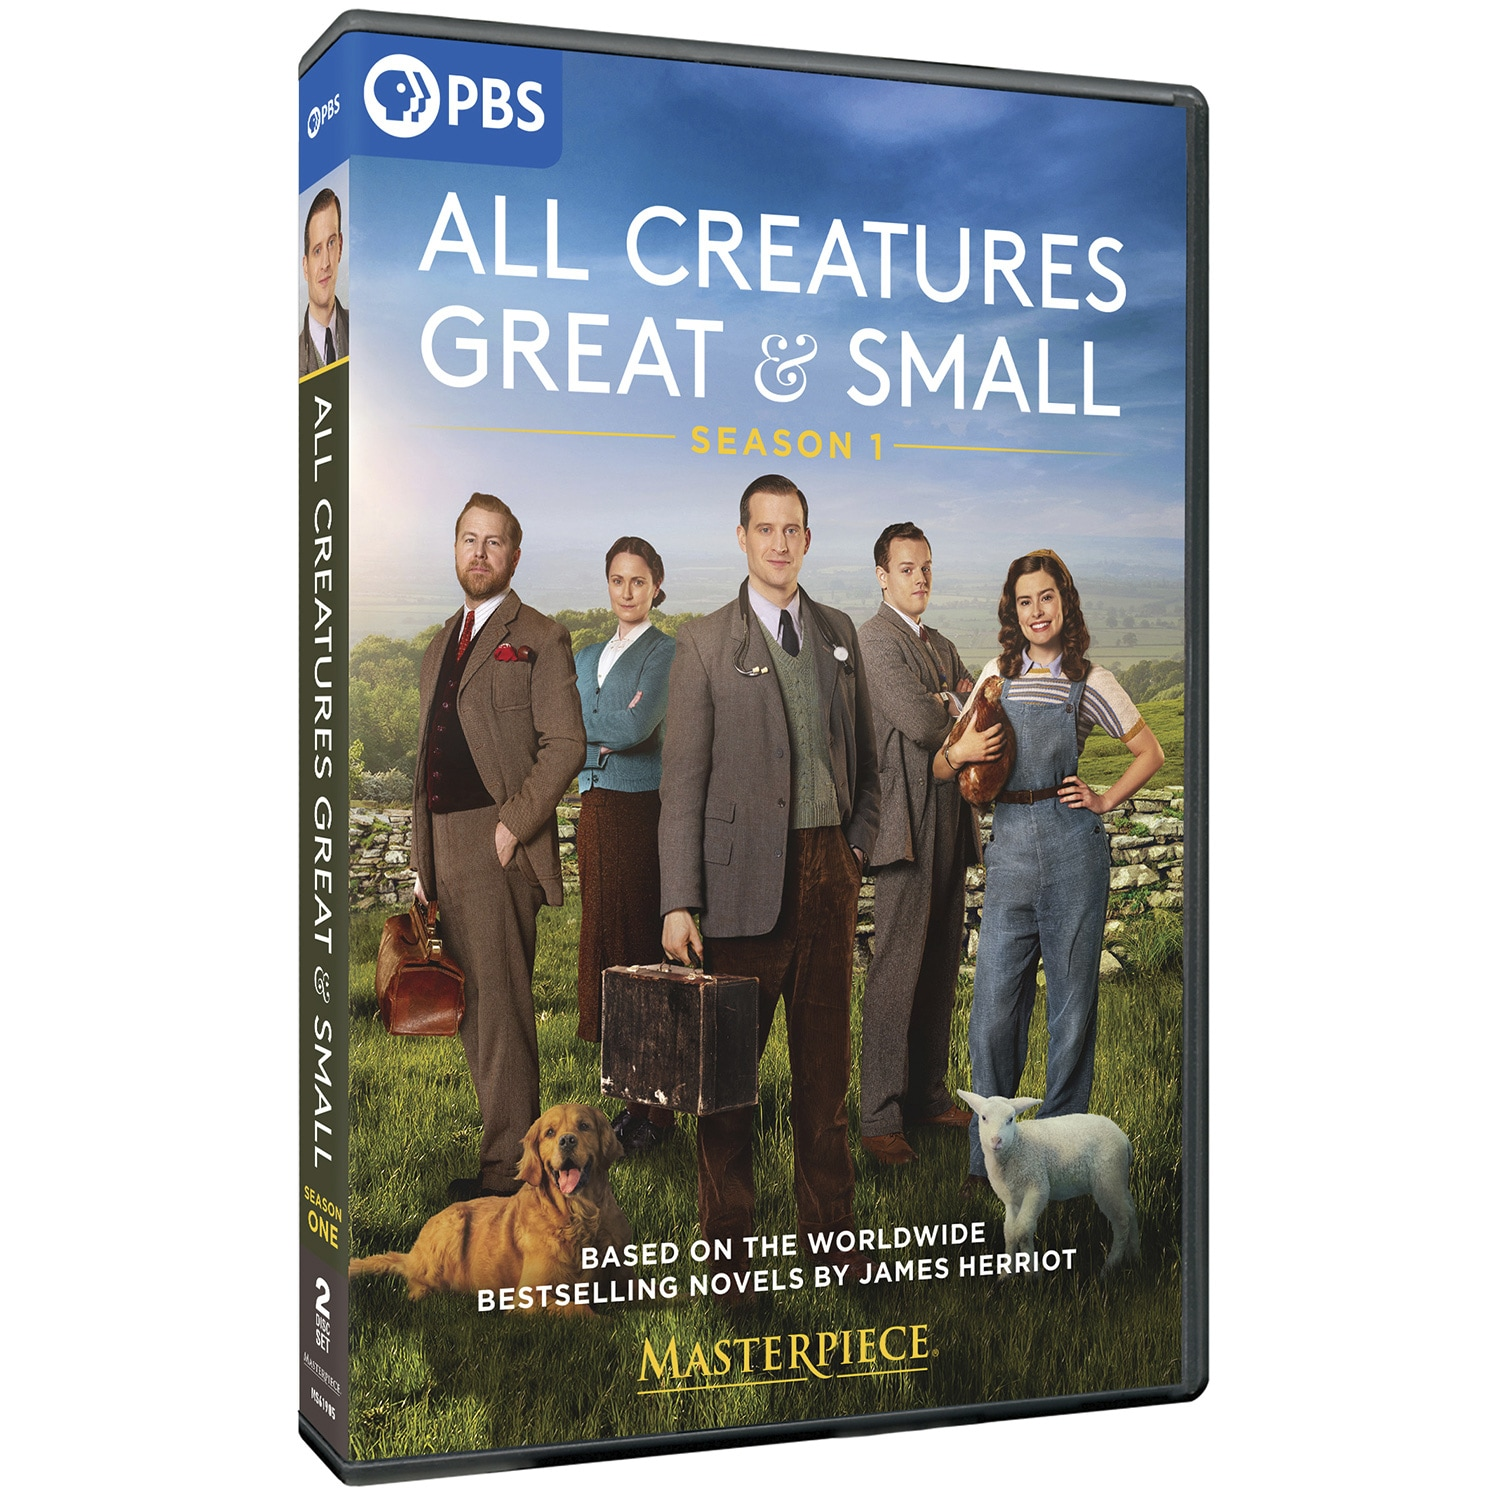 Masterpiece: All Creatures Great and Small DVD & Blu-ray   Shop ...